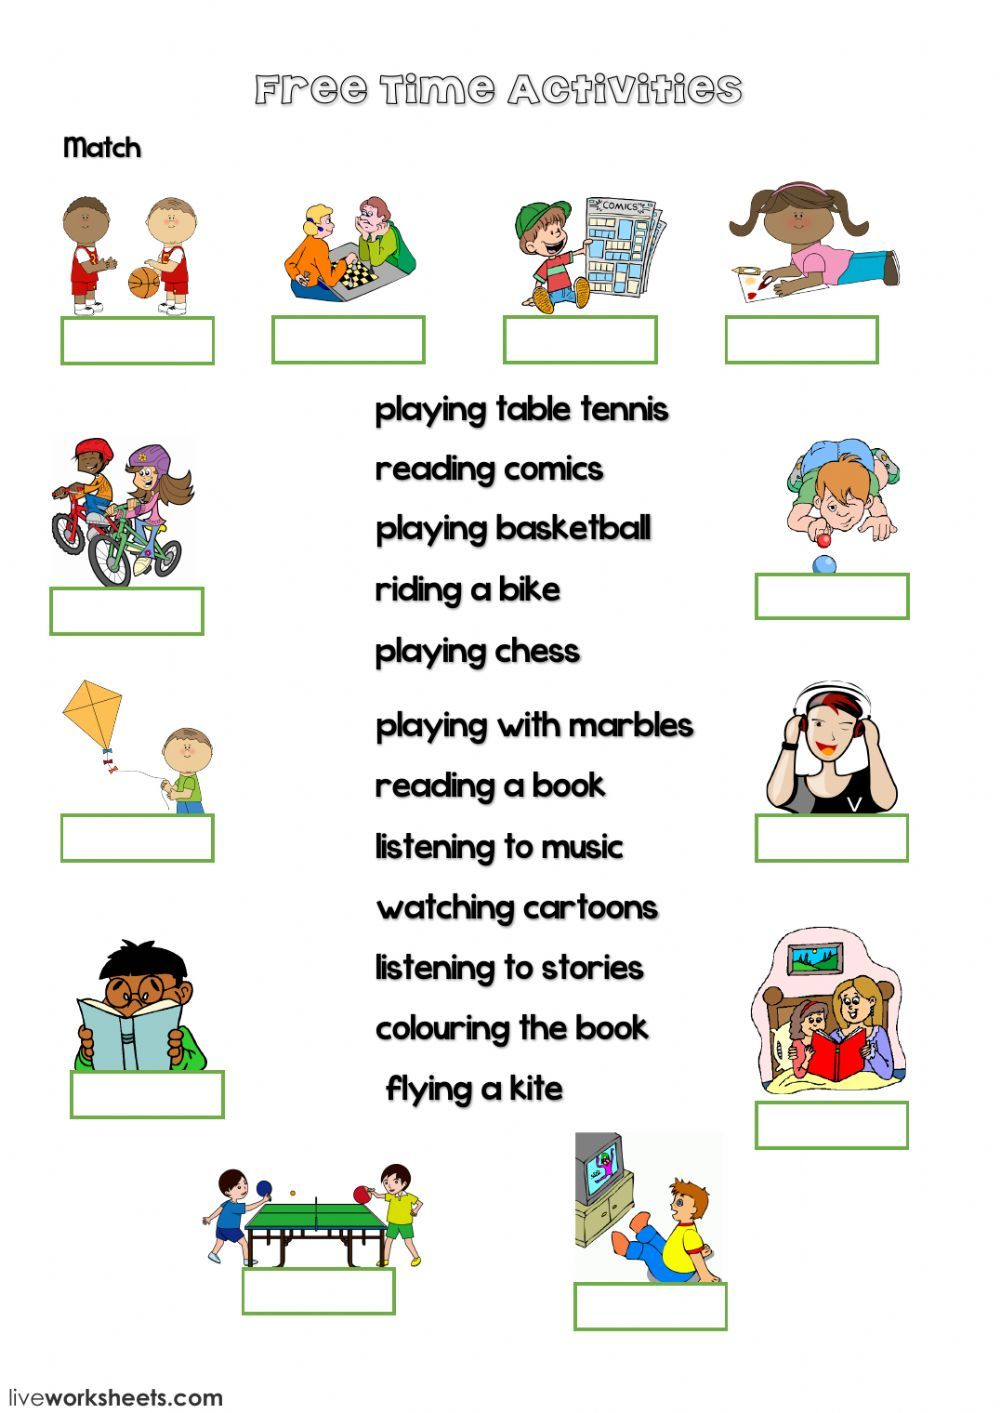 Free Time activities interactive and downloadable ...